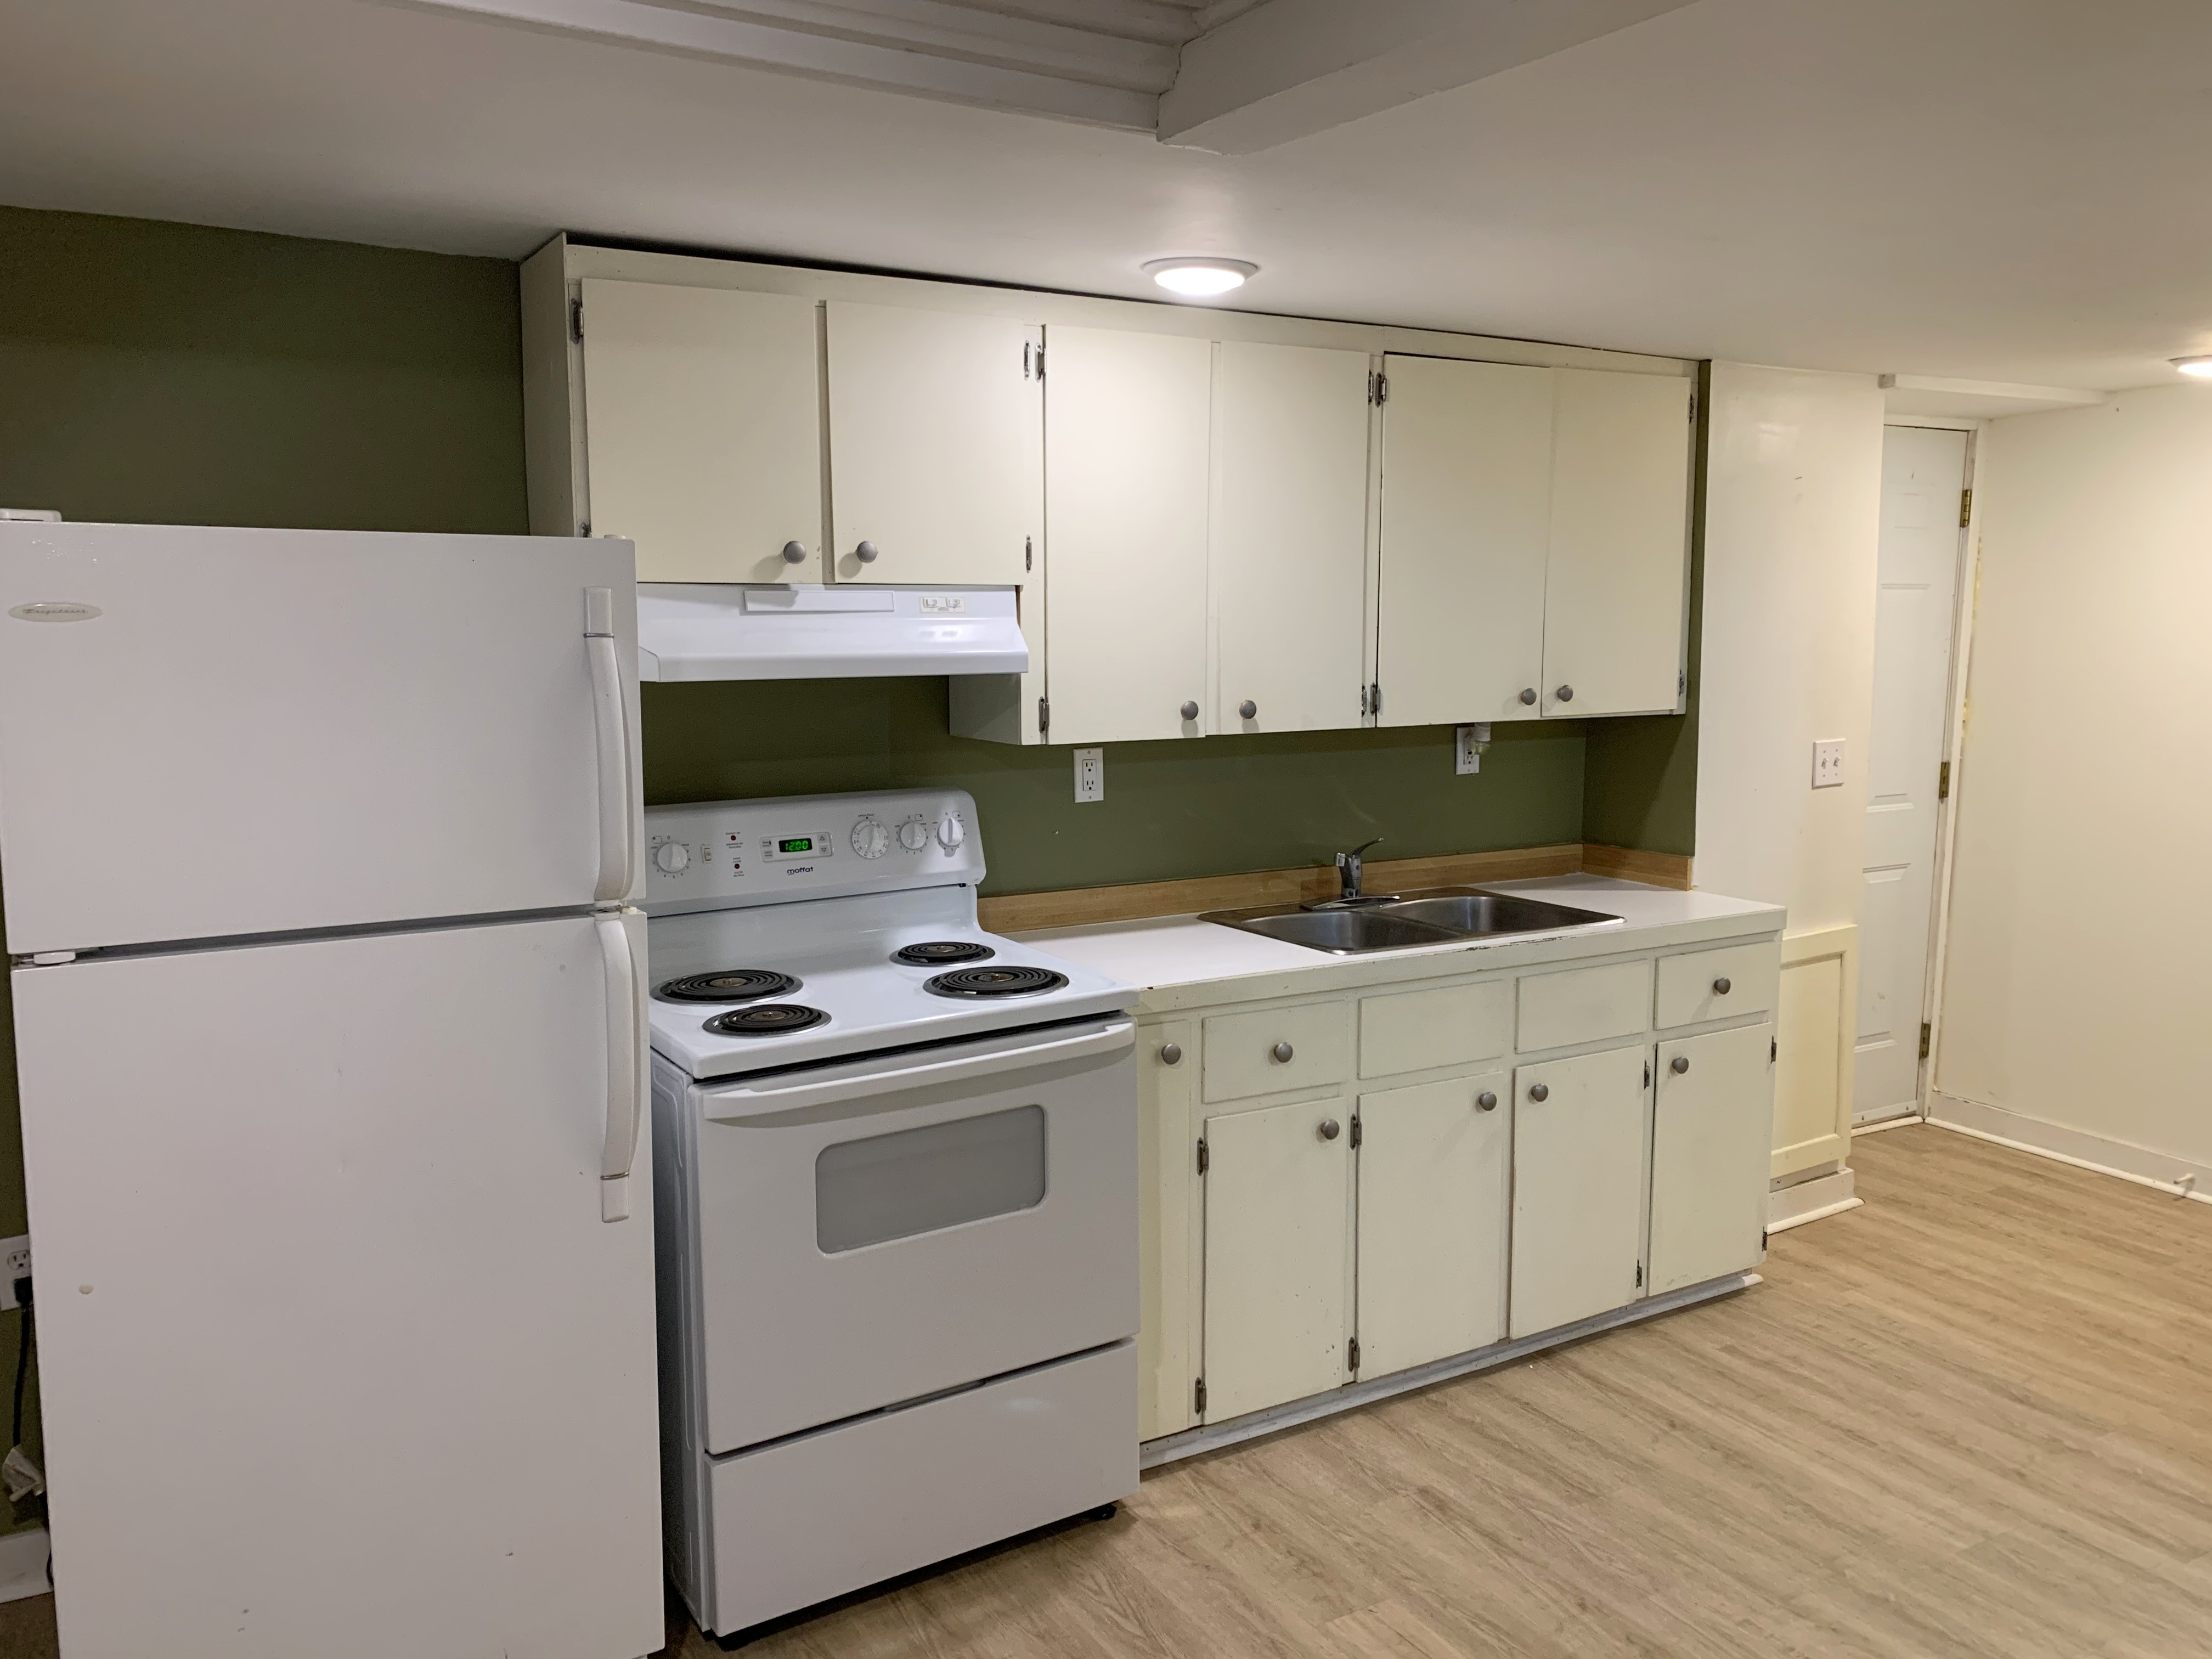 Bachelor Suite Kitchen